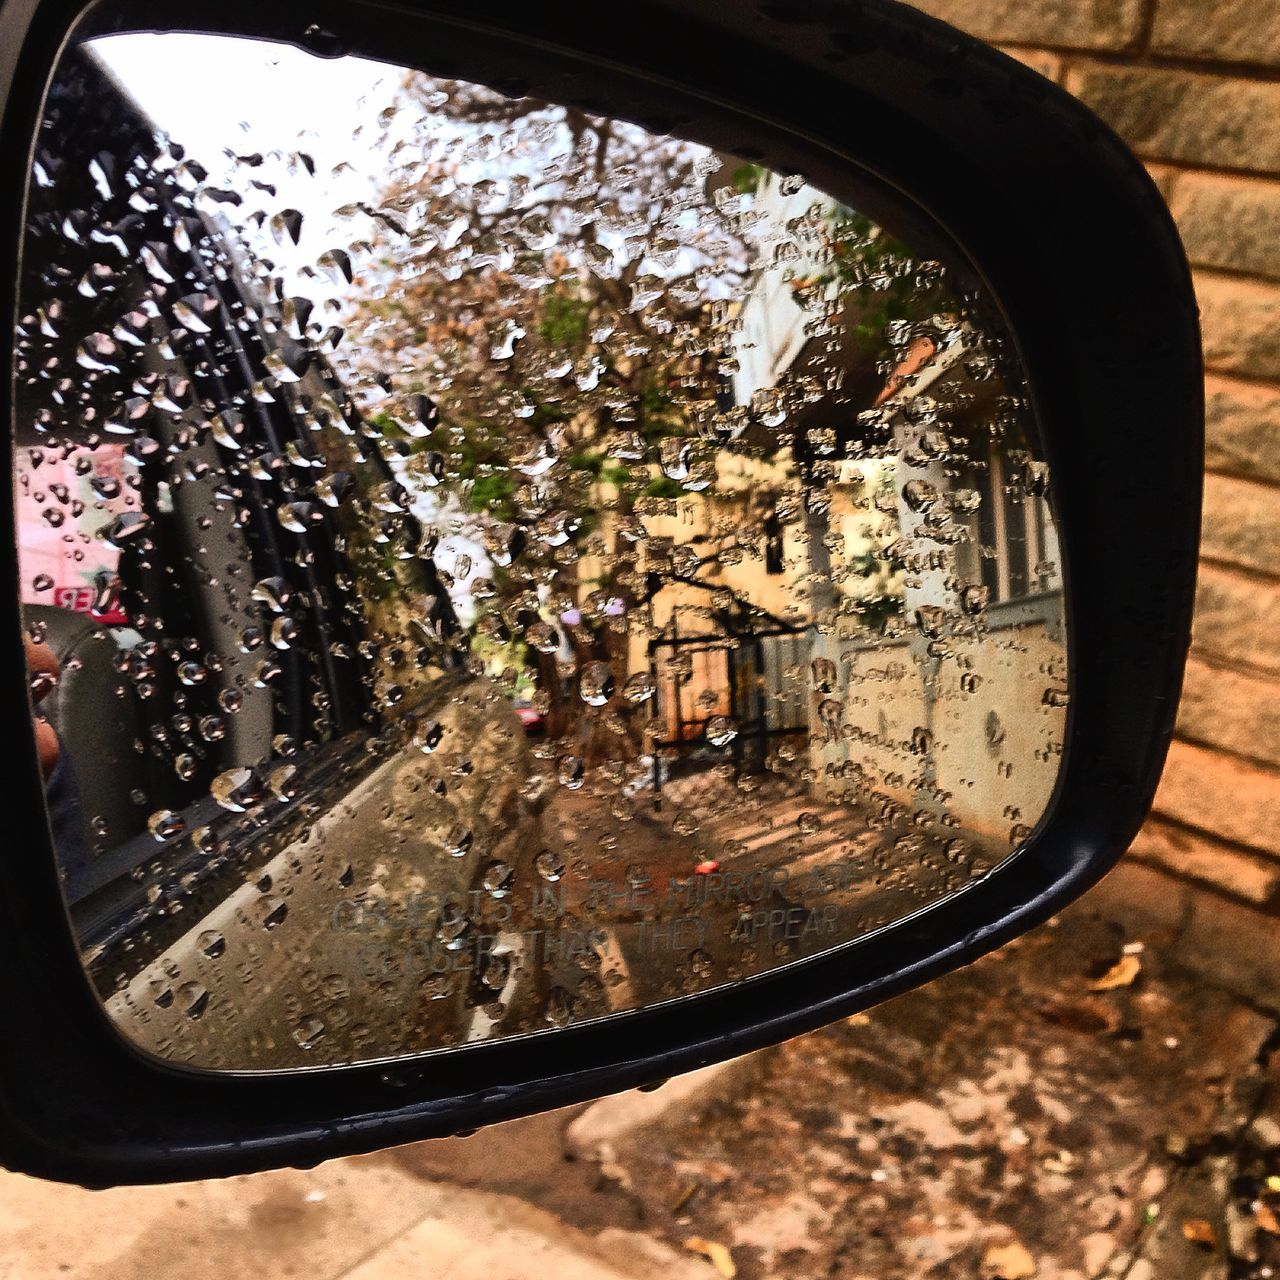 A wet Rear View Mirror. Car Droplets Drops Of Water Not Clear Rear View Mirror Rearview Reflection Shiny Smudged Water On Mir Wet Wetty